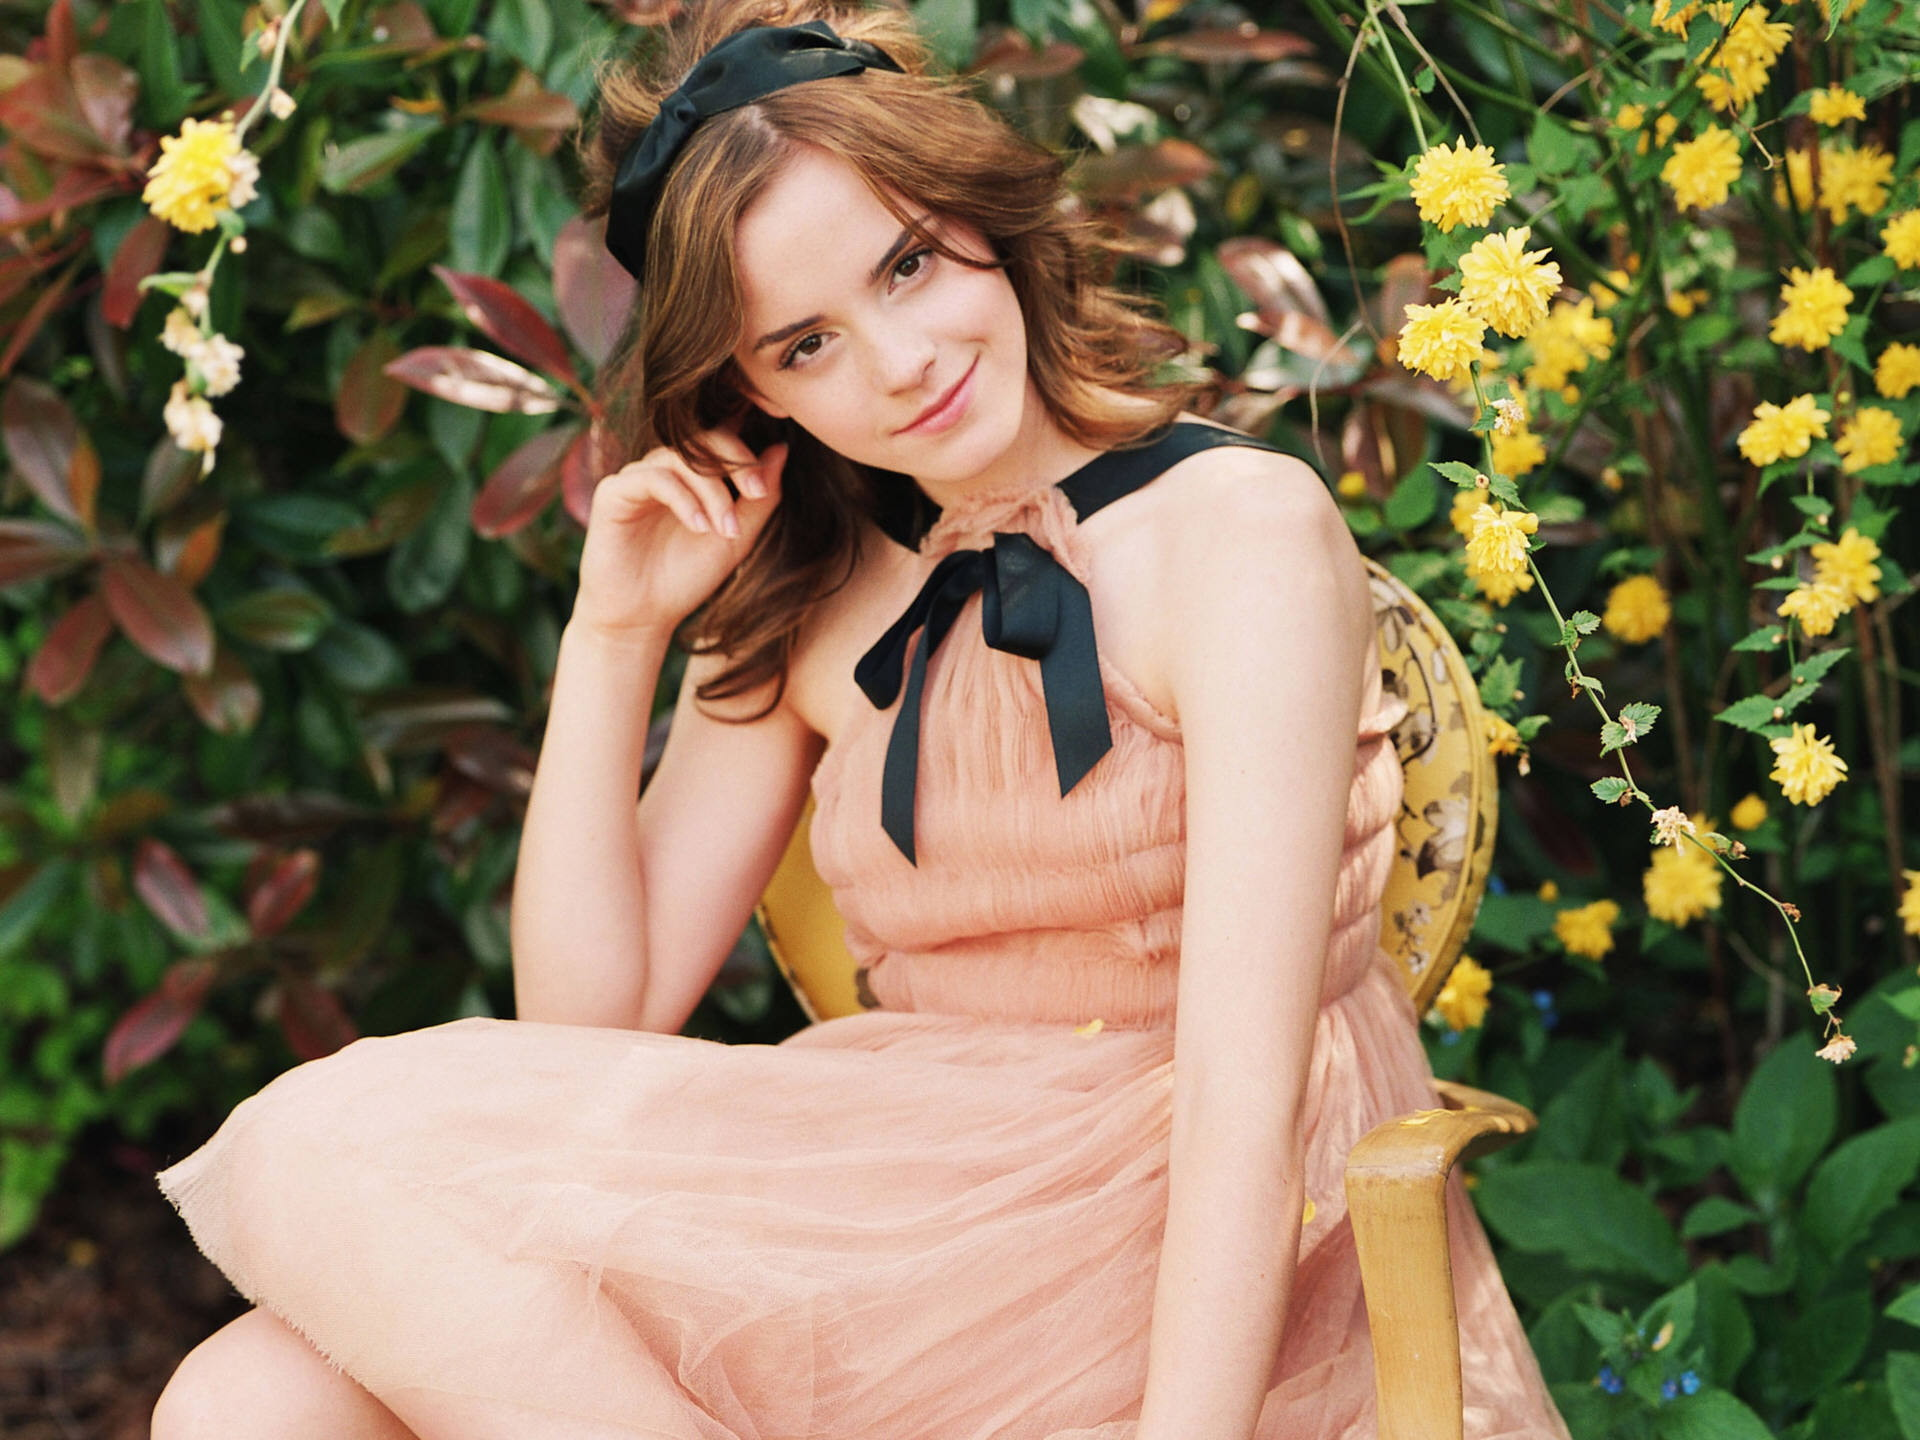 emma watson wallpapers for mobile - HD Background